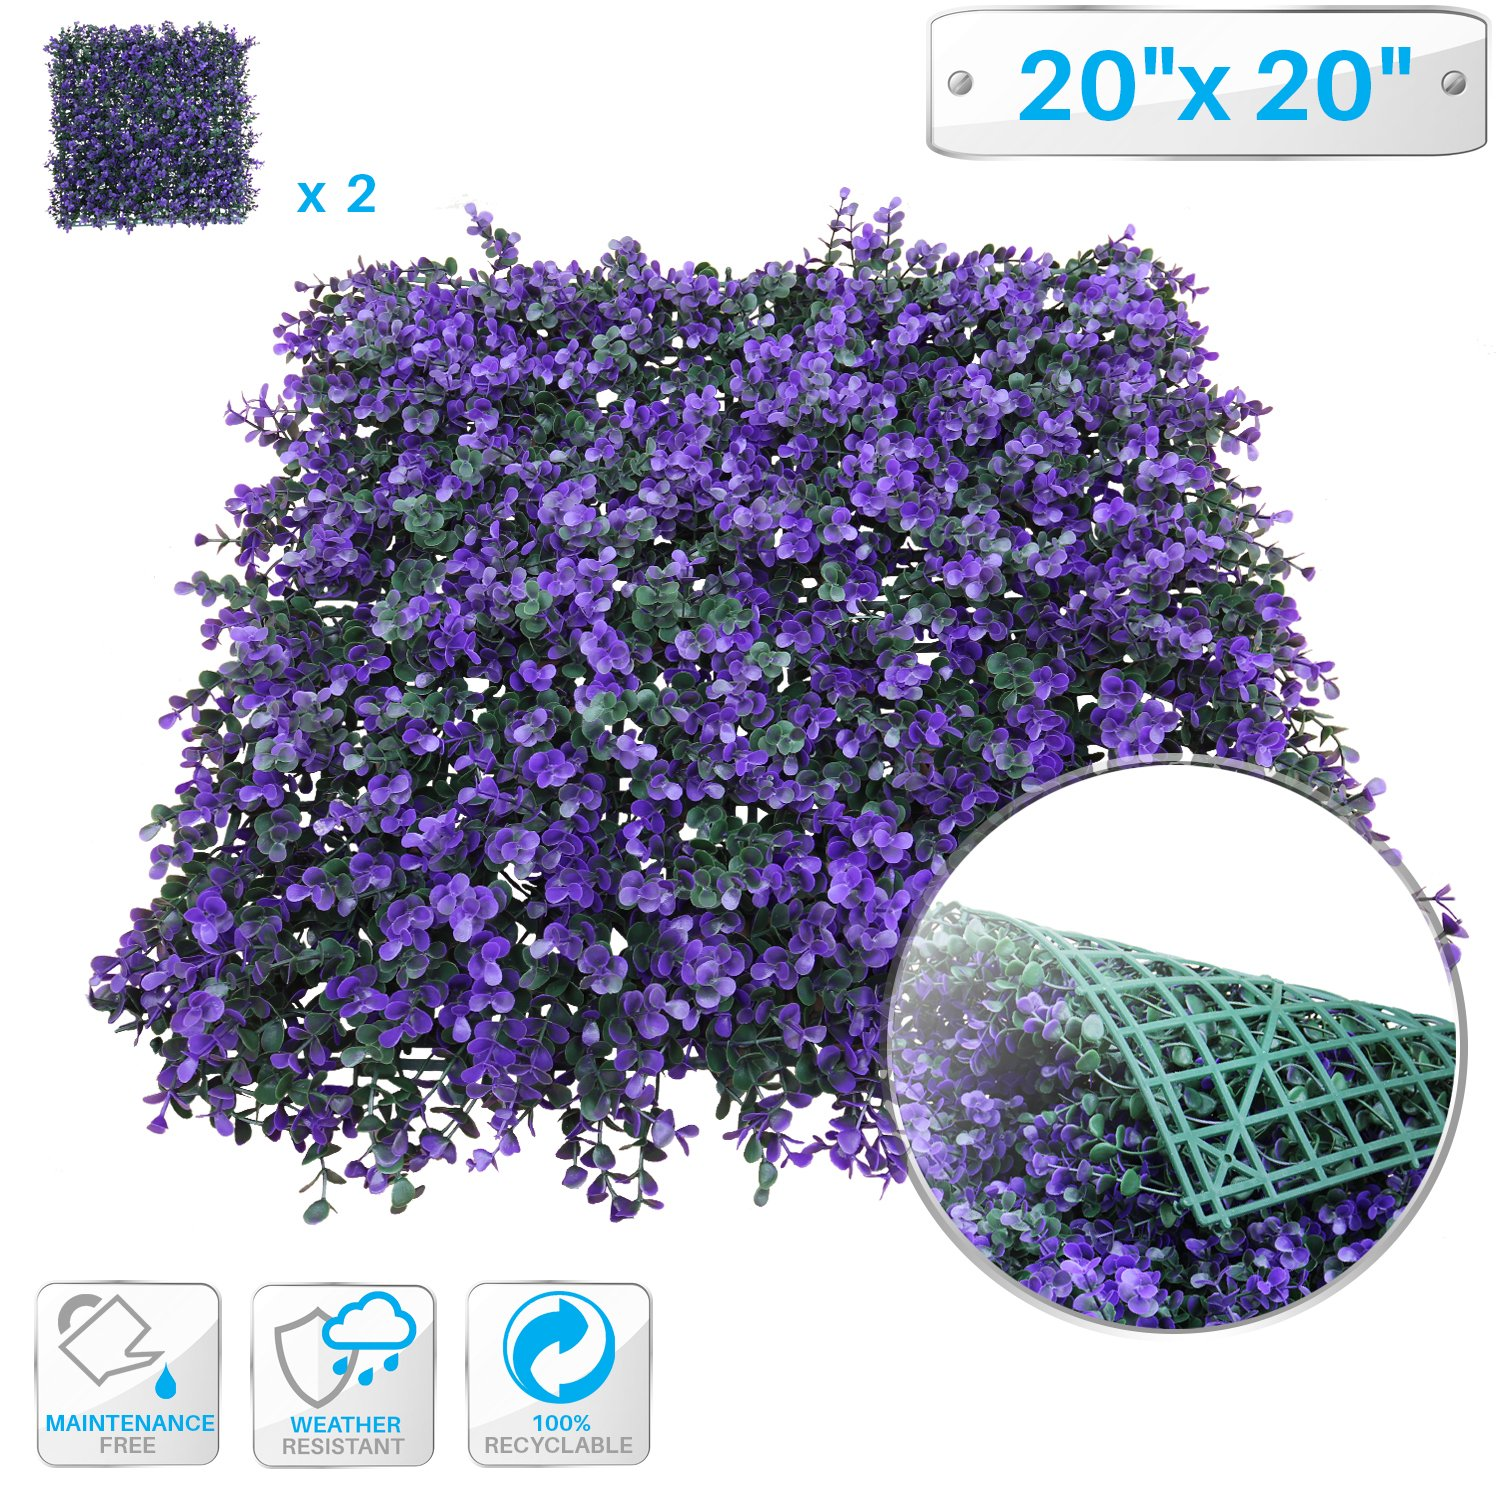 """Patio Paradise 2pcs 20""""x20"""" Artificial Purple Lavender Hedge Panel, Decorative Privacy Fence Screen Greenery Faux Plant Tree Wall for Indoor or Outdoor Garden Décor"""